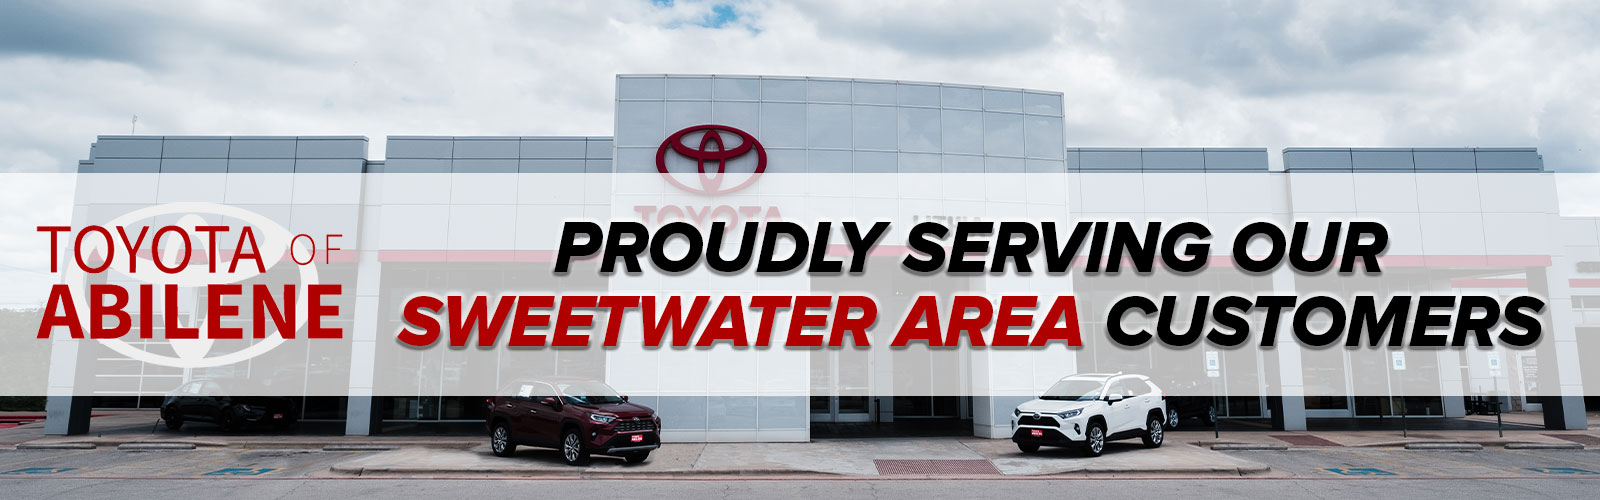 Toyota dealership near Sweetwater